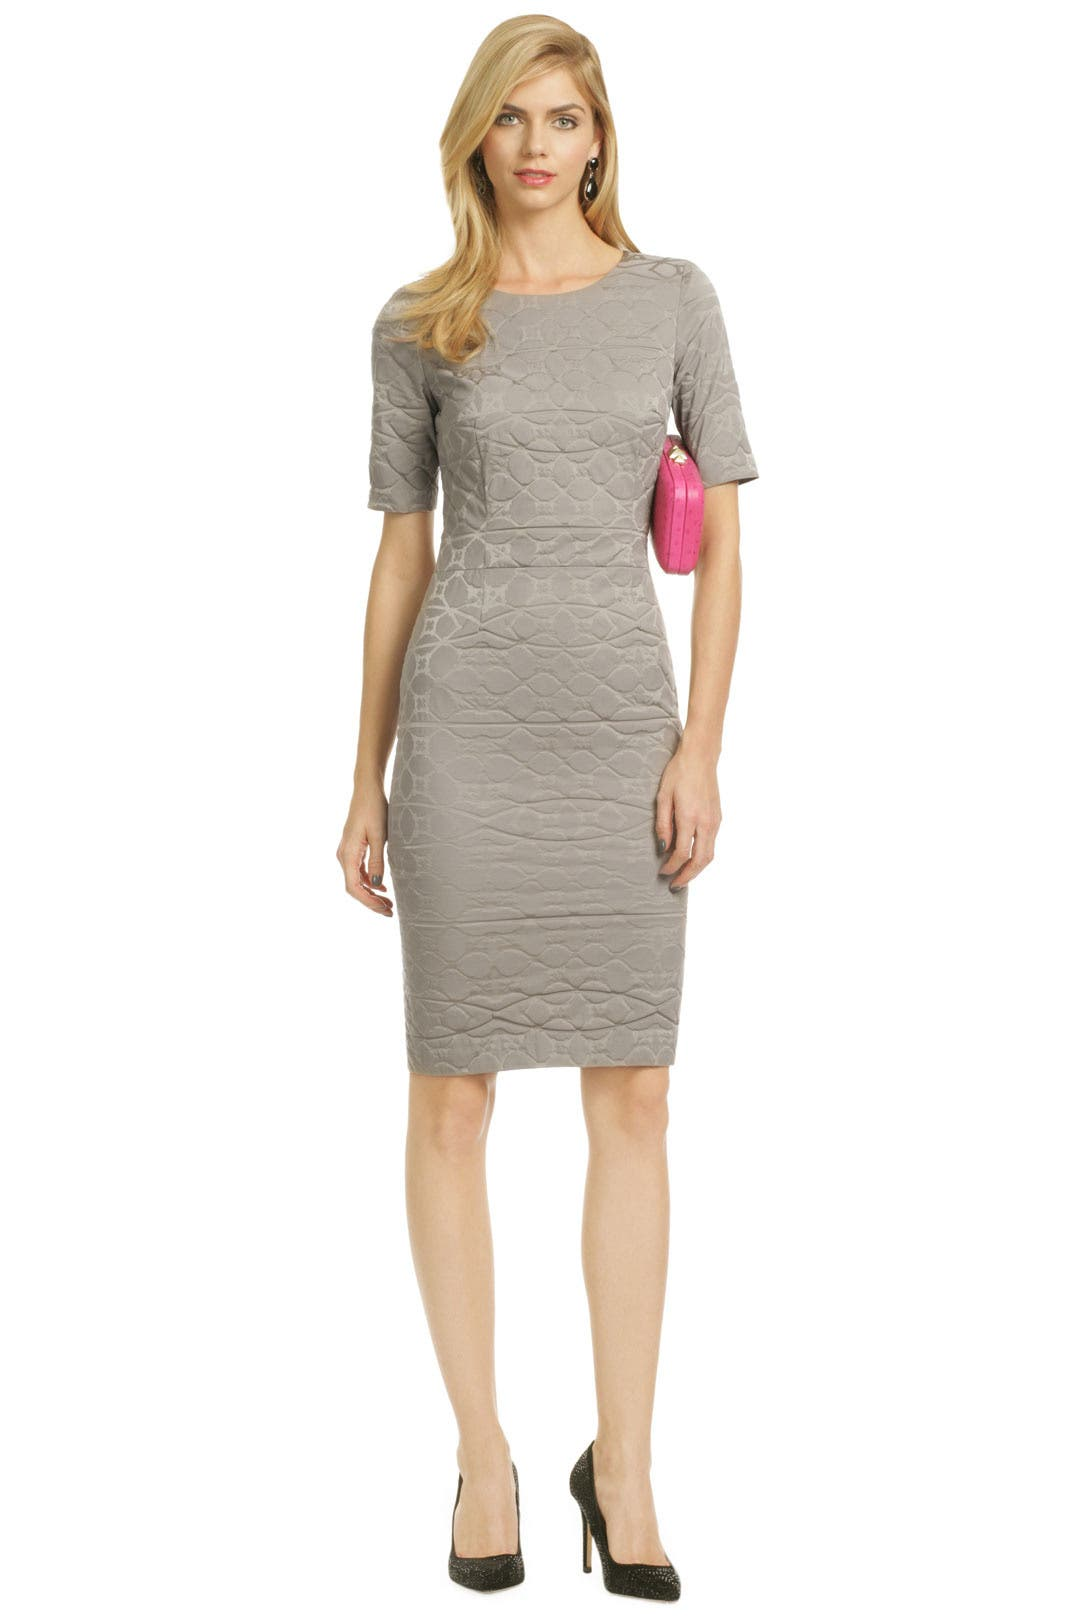 Gray Ripple Marks Sheath by Vera Wang